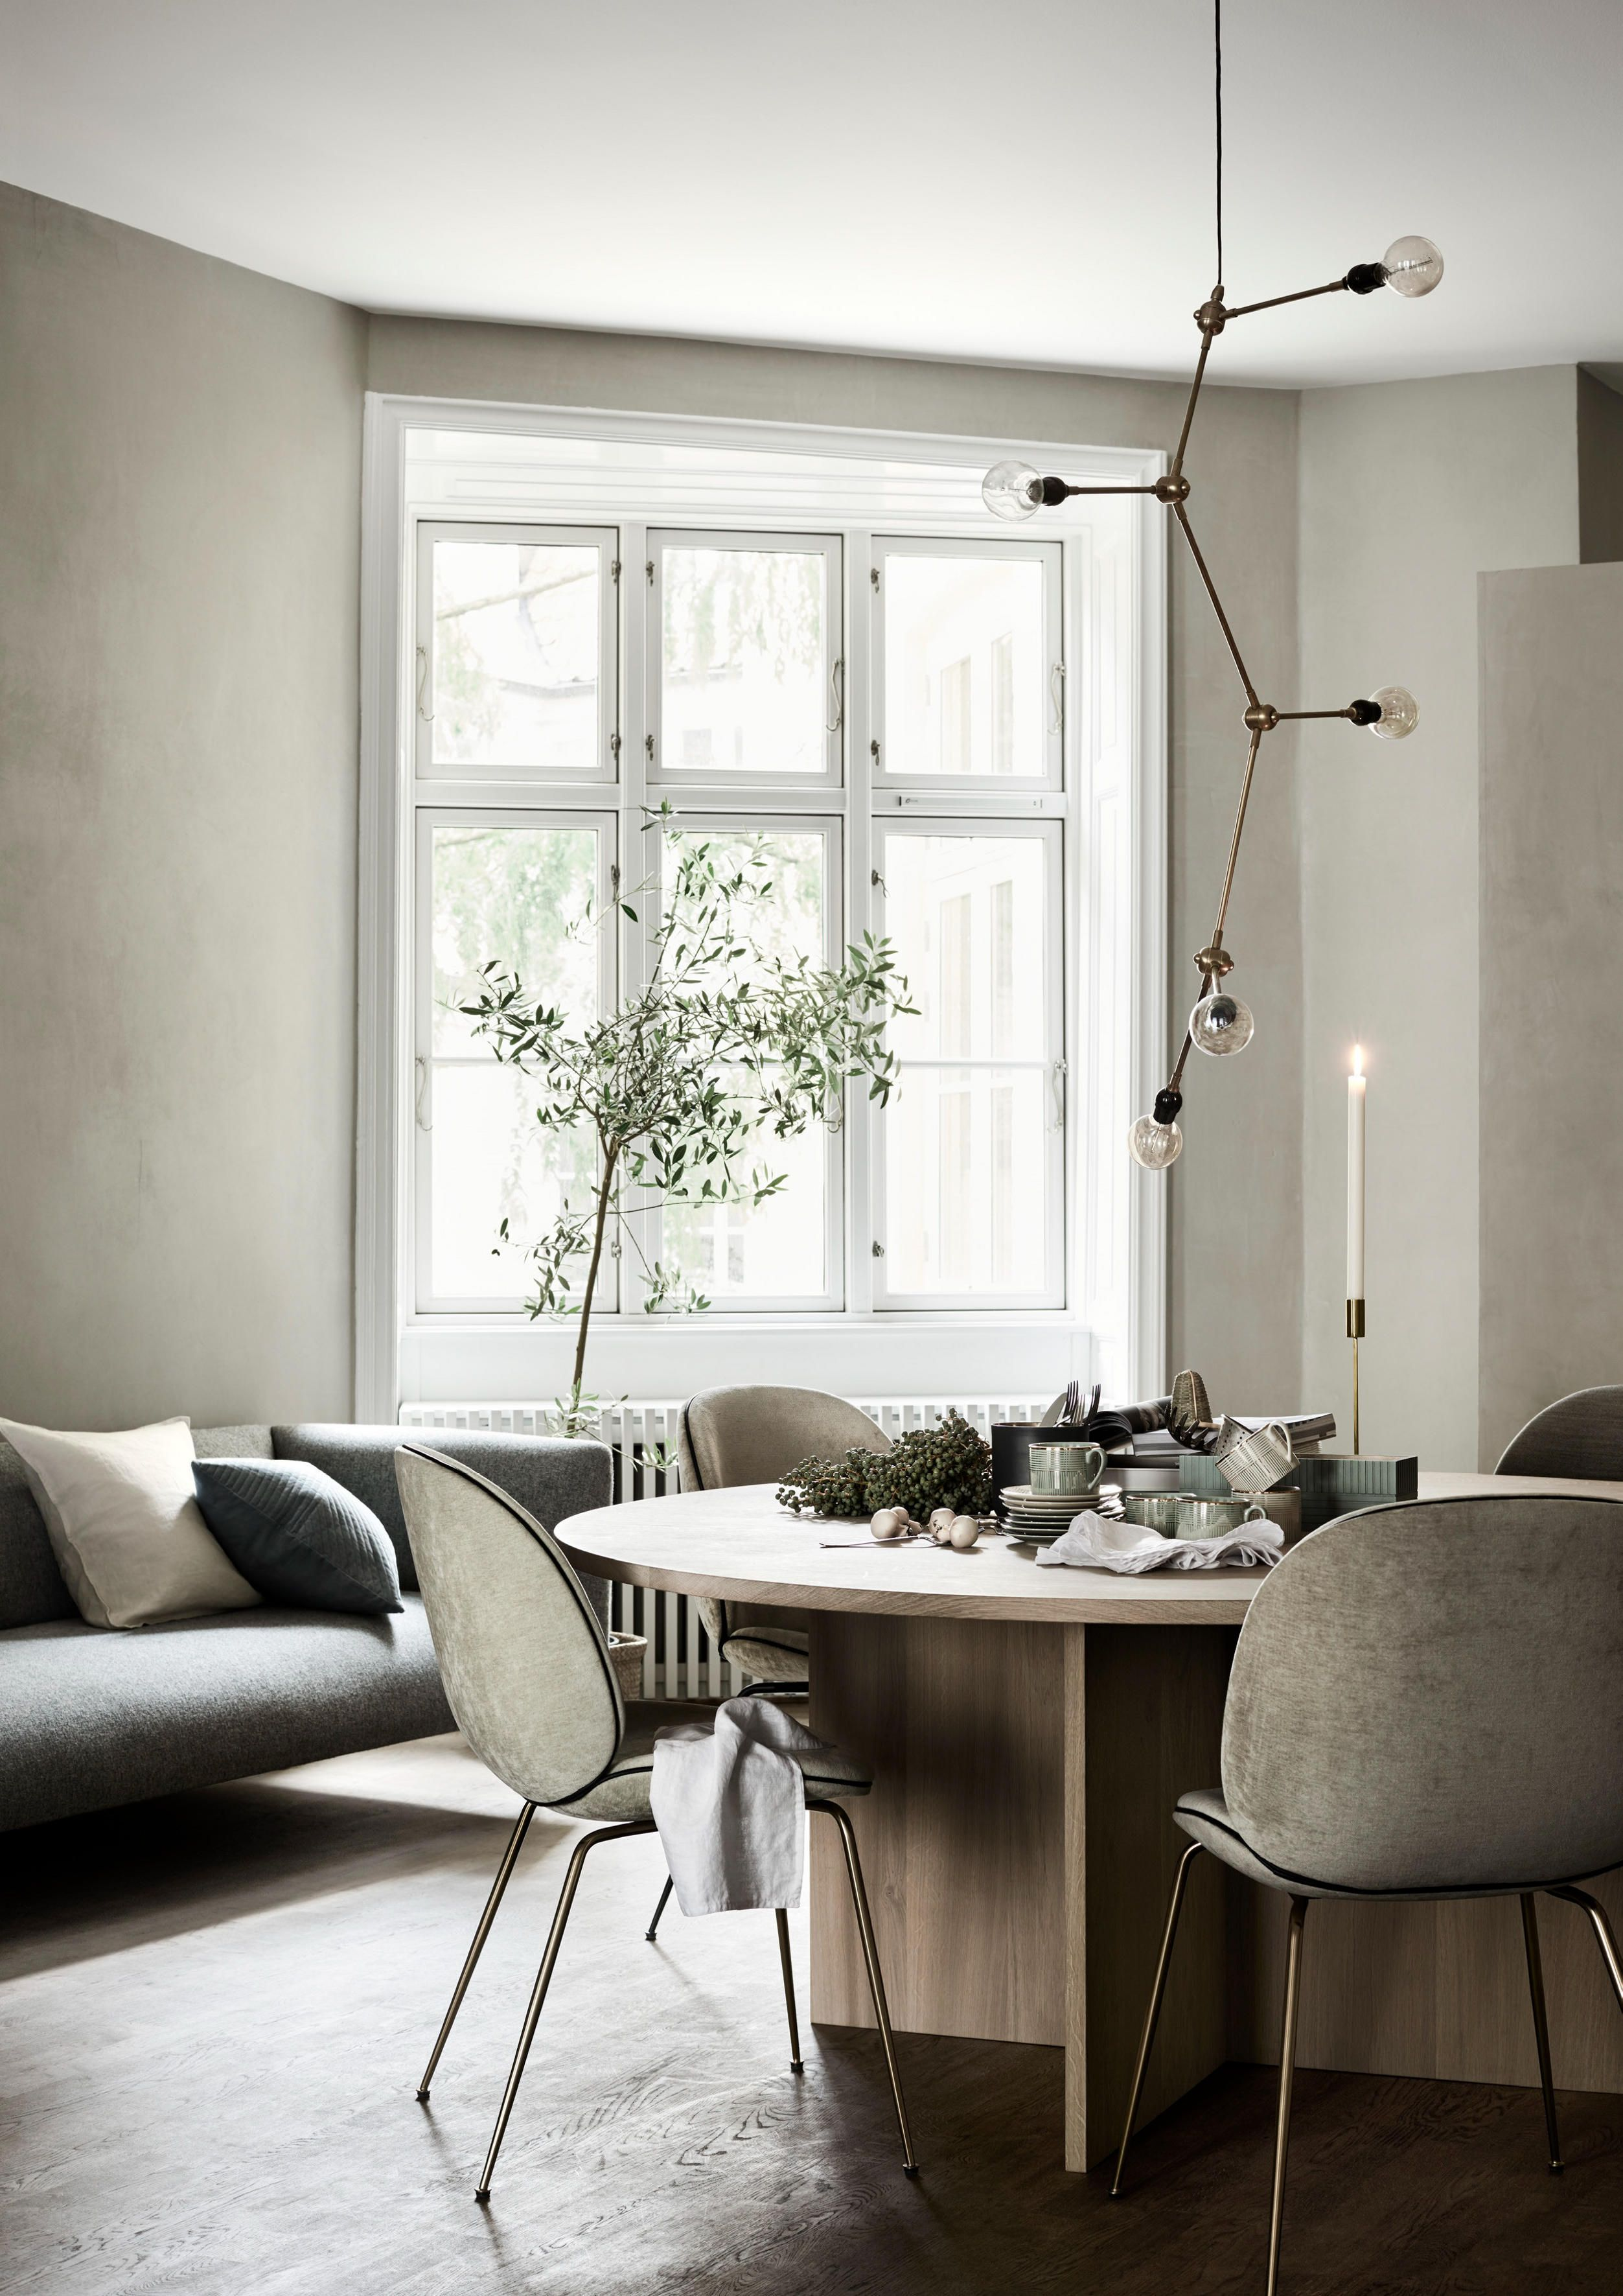 Hum home allspice design dom pinterest living rooms and